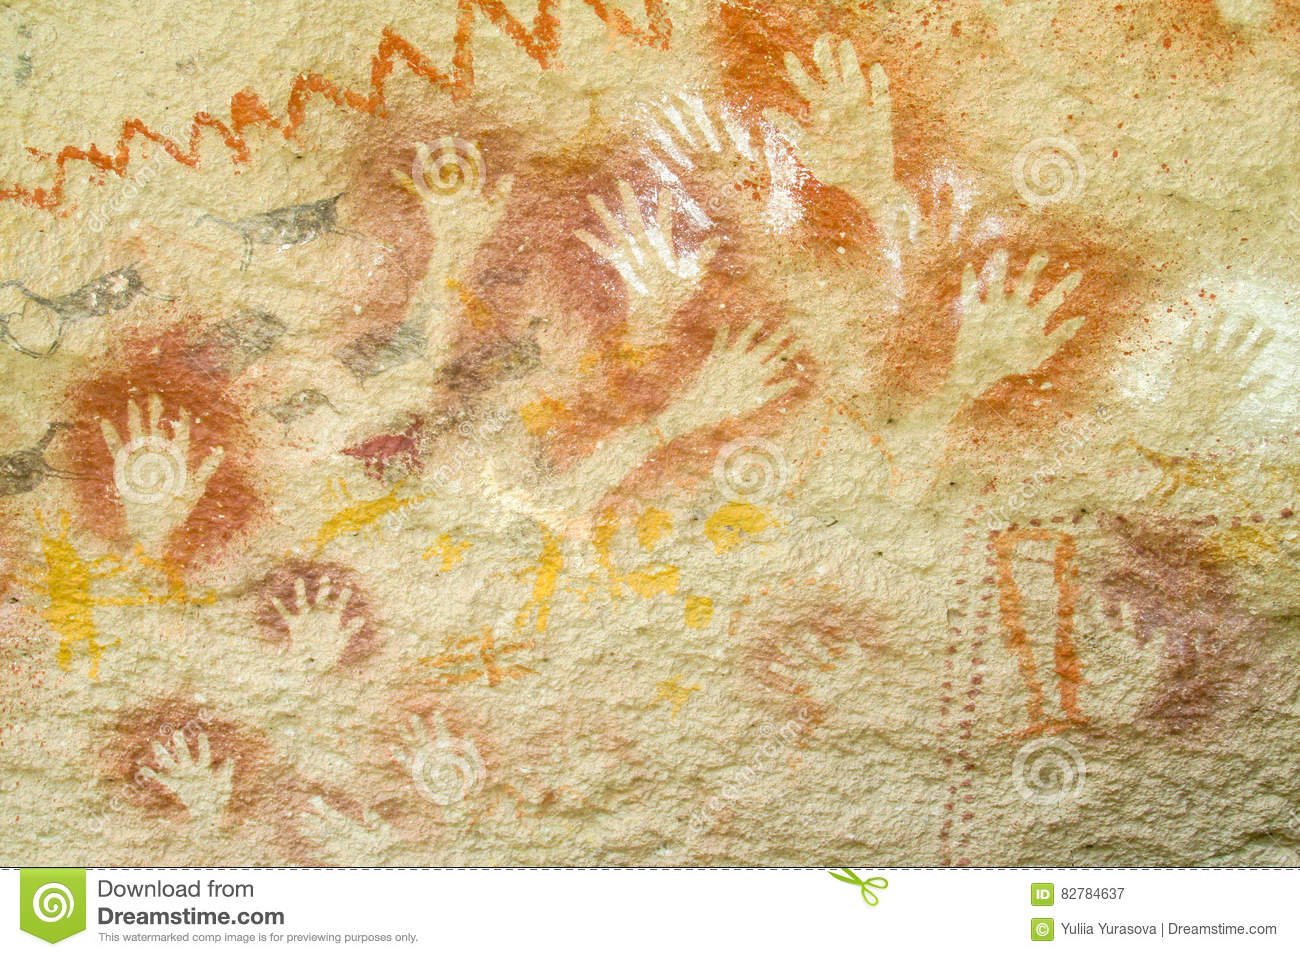 Hand prints on a cave wall stock illustration. Illustration of ...